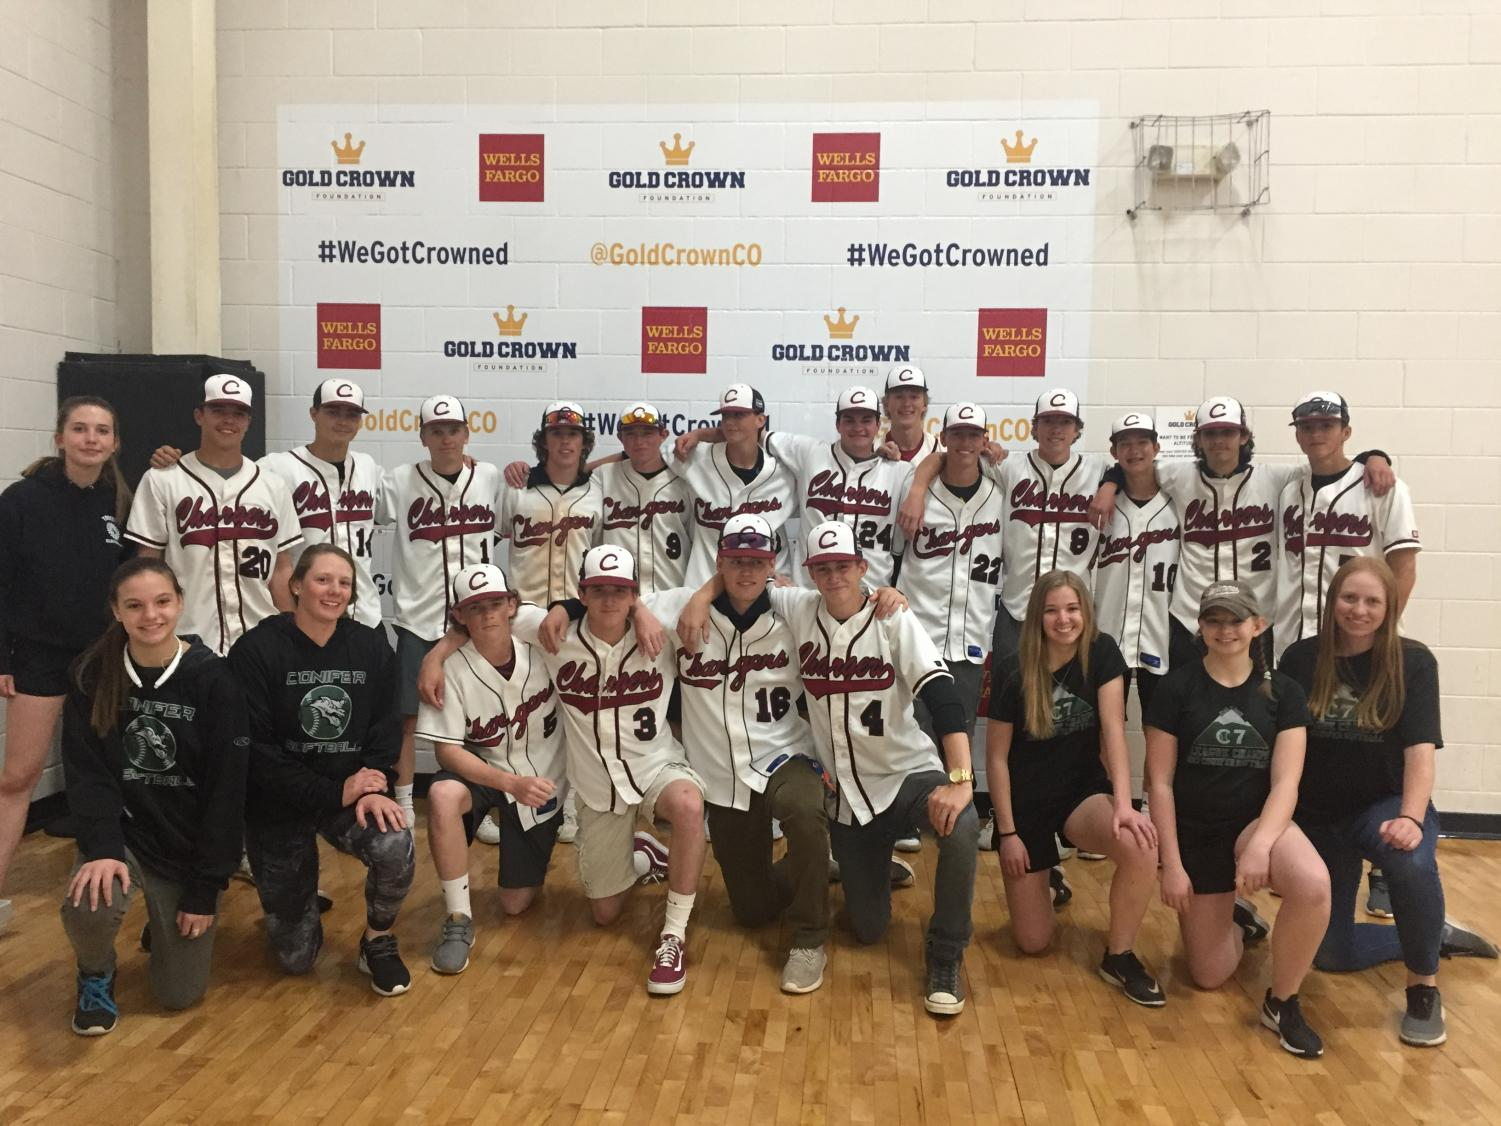 The six Conifer softball players with the Chatfield baseball team after a day of fun day at Gold Crown helping the Jeffco middle school special education students.